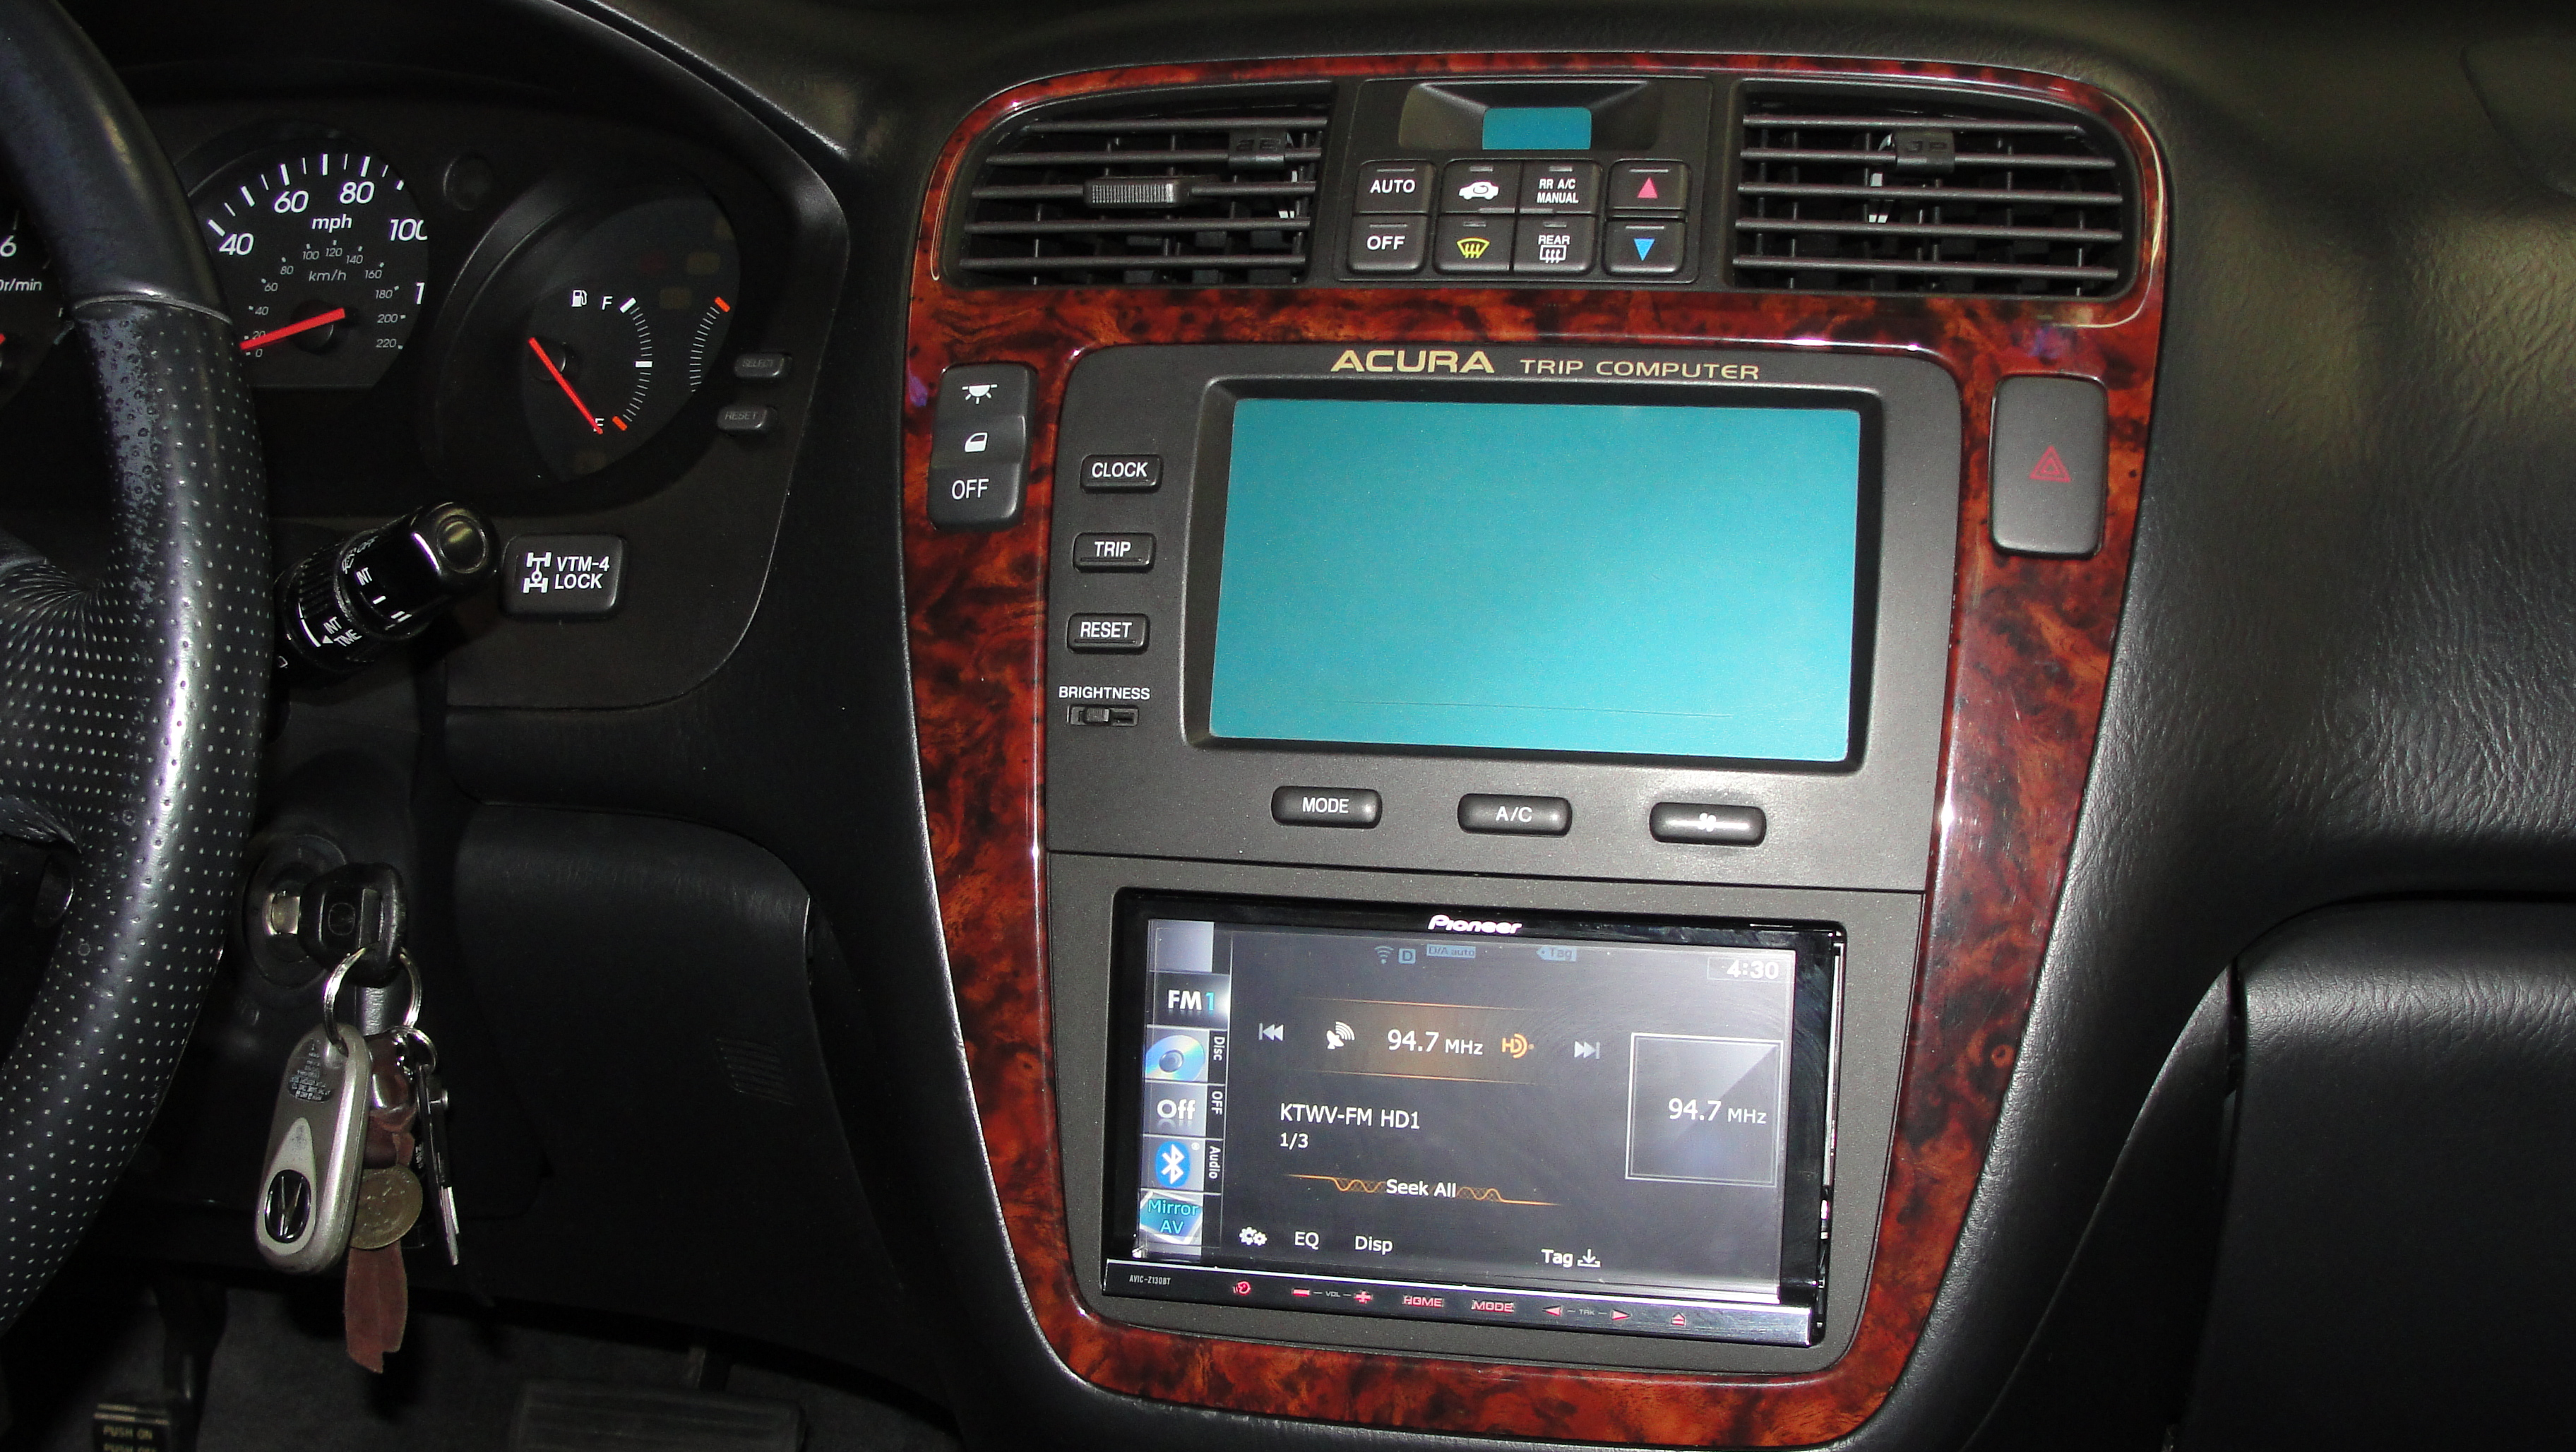 Aftermarket Stereo Installed On MDX Acura MDX Forum Acura MDX - Acura tsx aftermarket parts